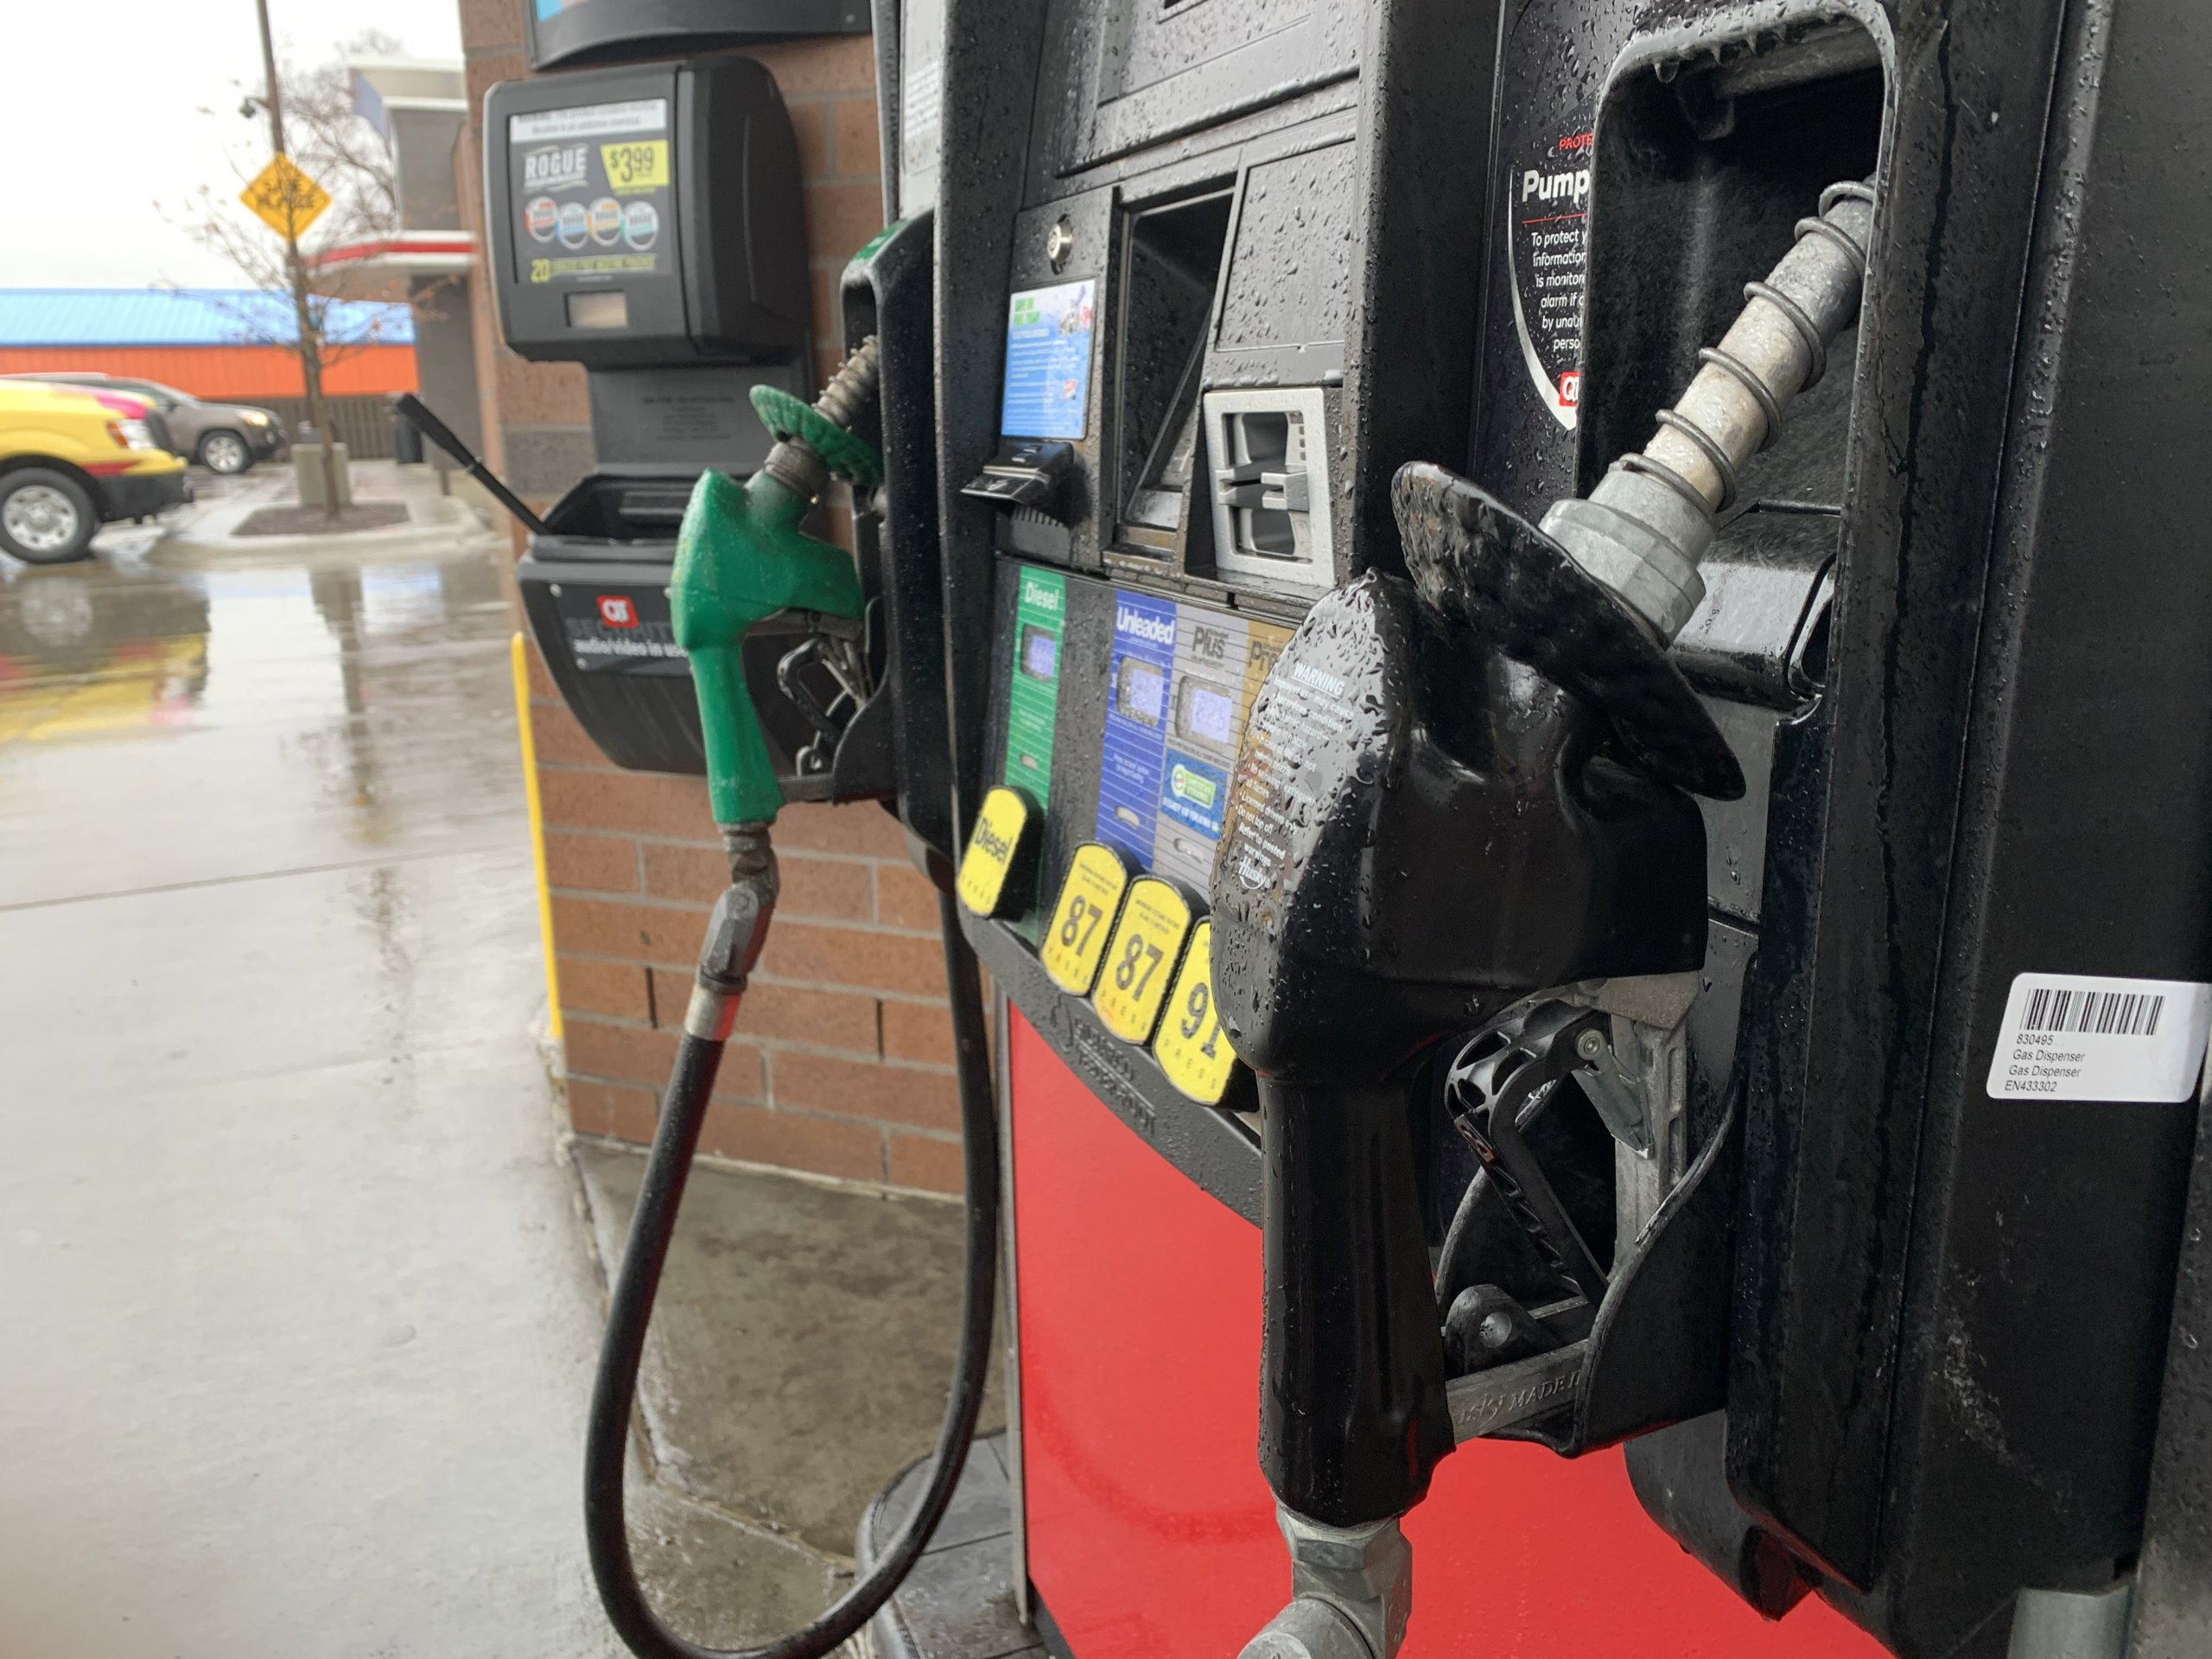 Governor's ethanol mandate has some powerful groups fuming